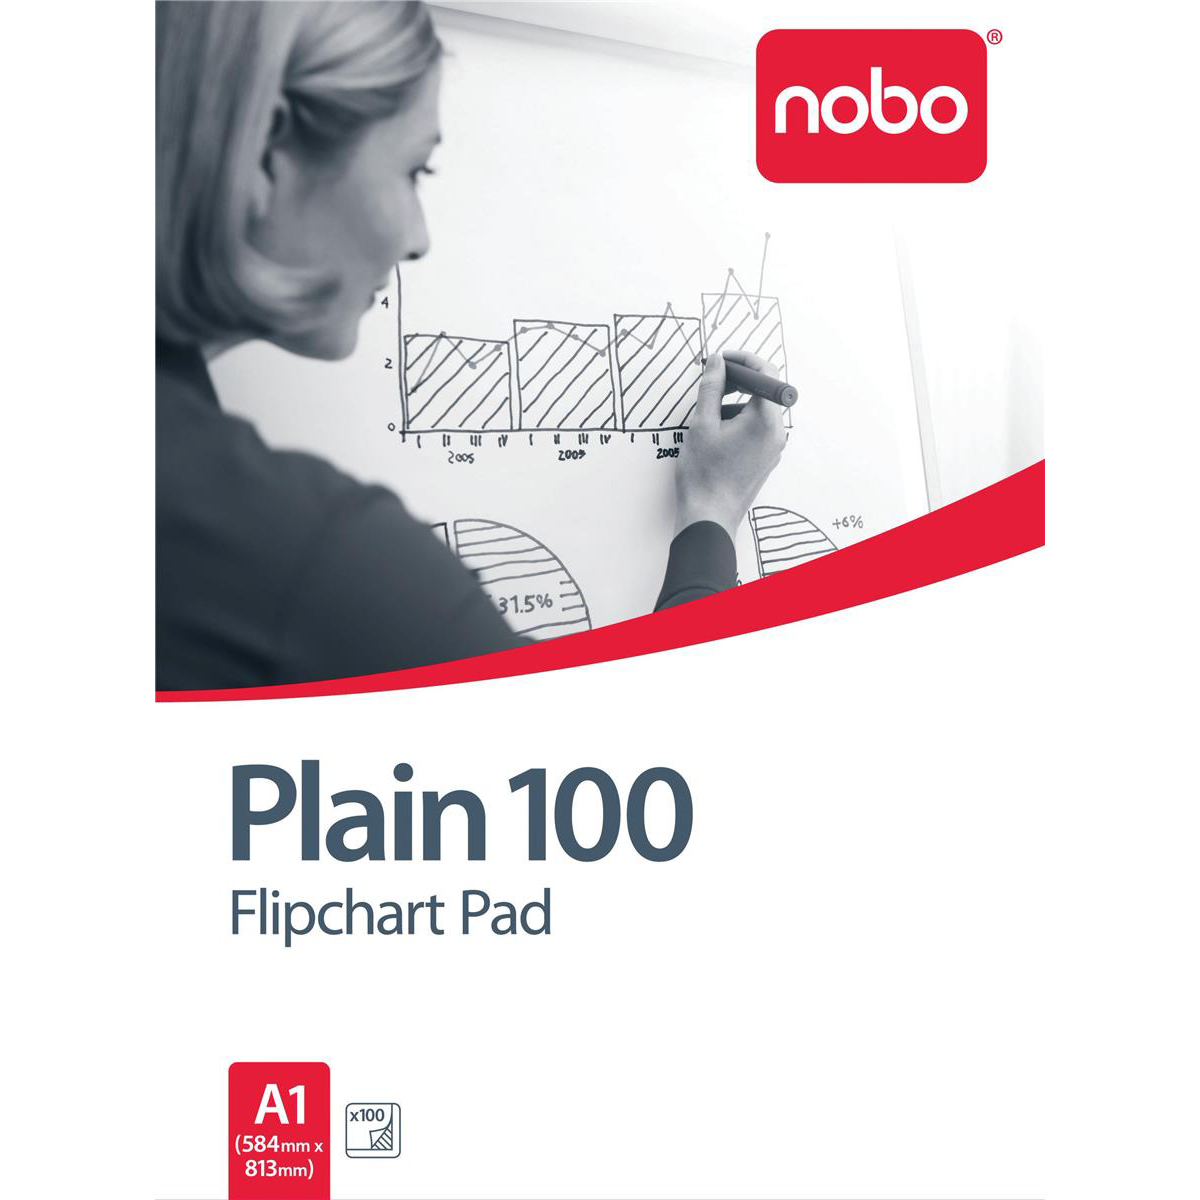 Nobo Flipchart Pad 100 Sheets 70gsm A1 Plain Ref 34633681 Pack 2